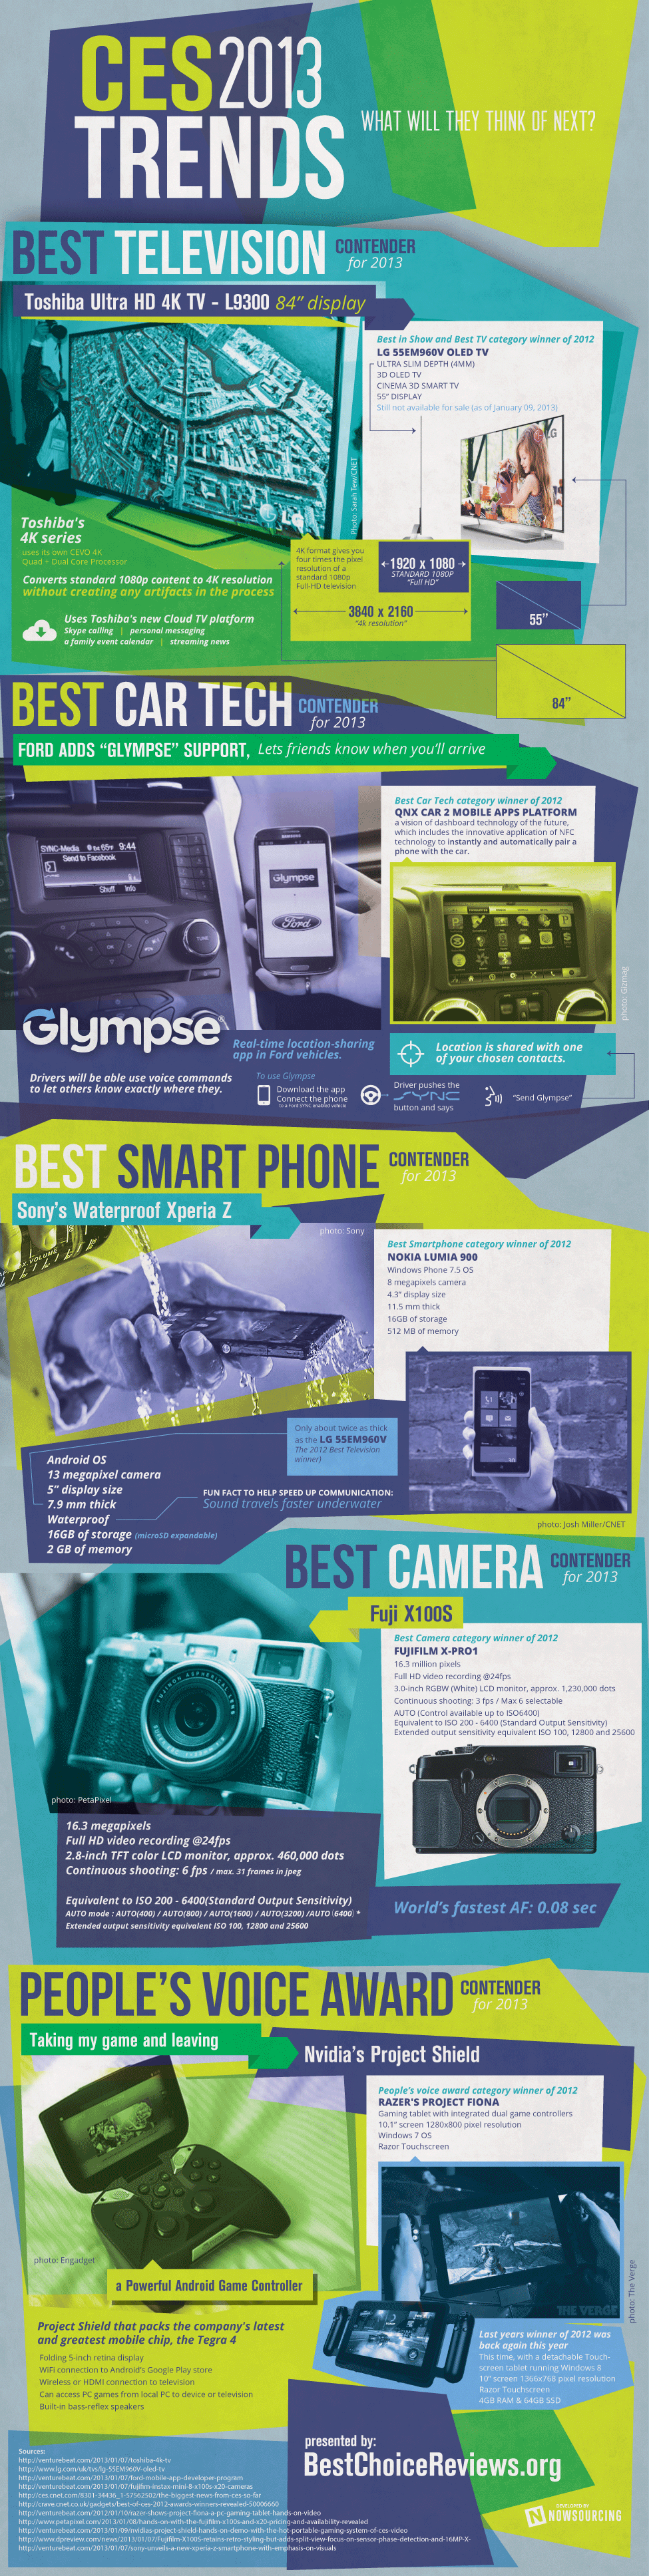 CES Technology Trends for 2013 [Infographic]